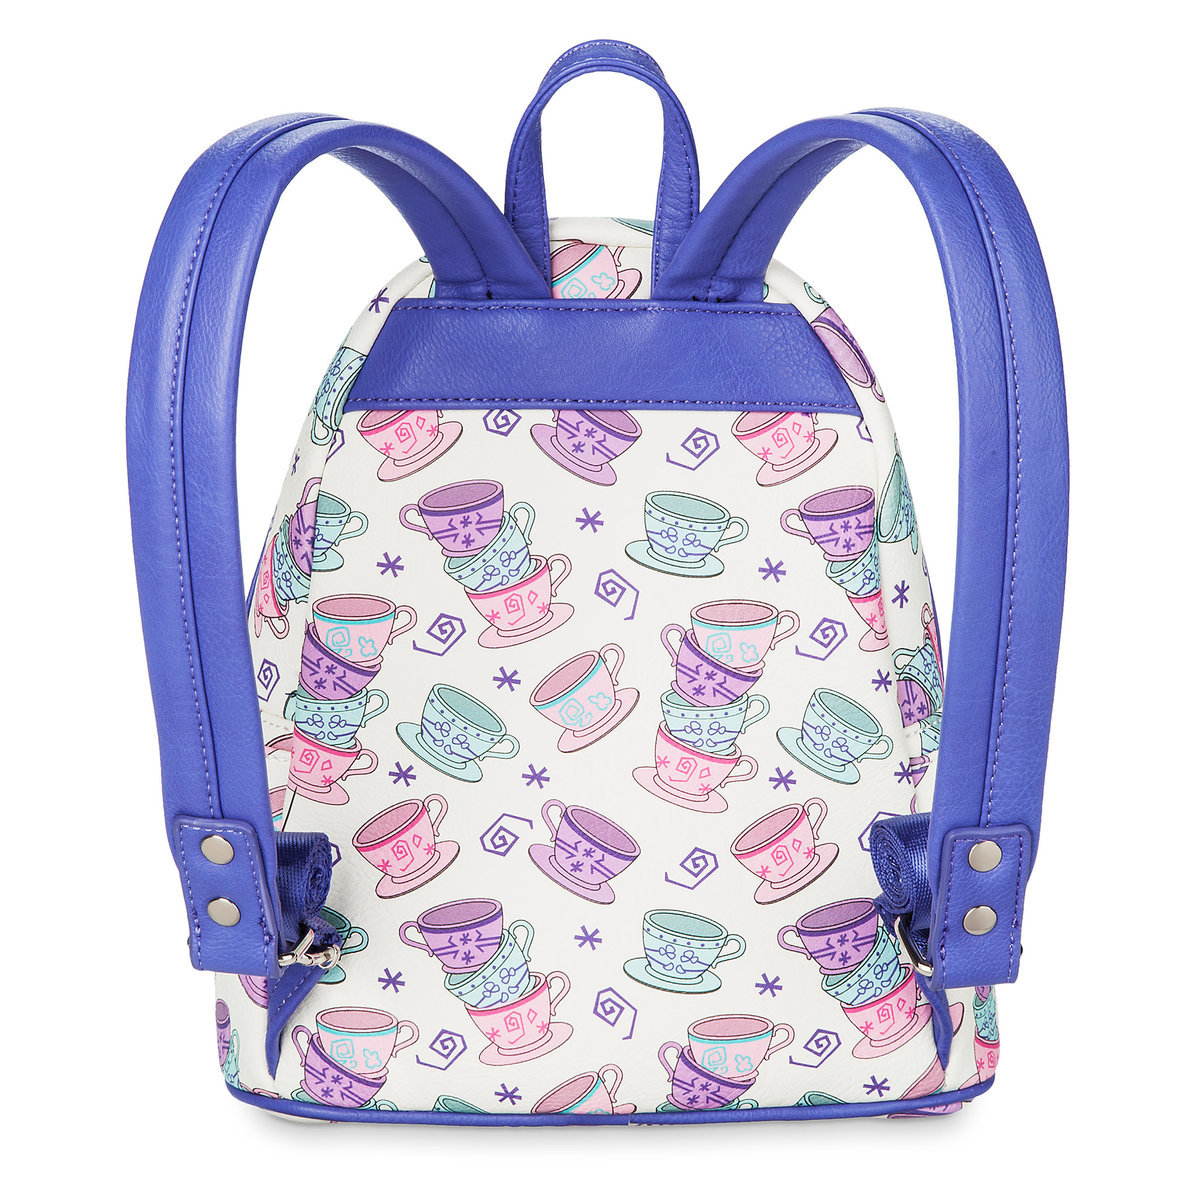 c9941739aa8 Mad Tea Party Mini Backpack by Loungefly